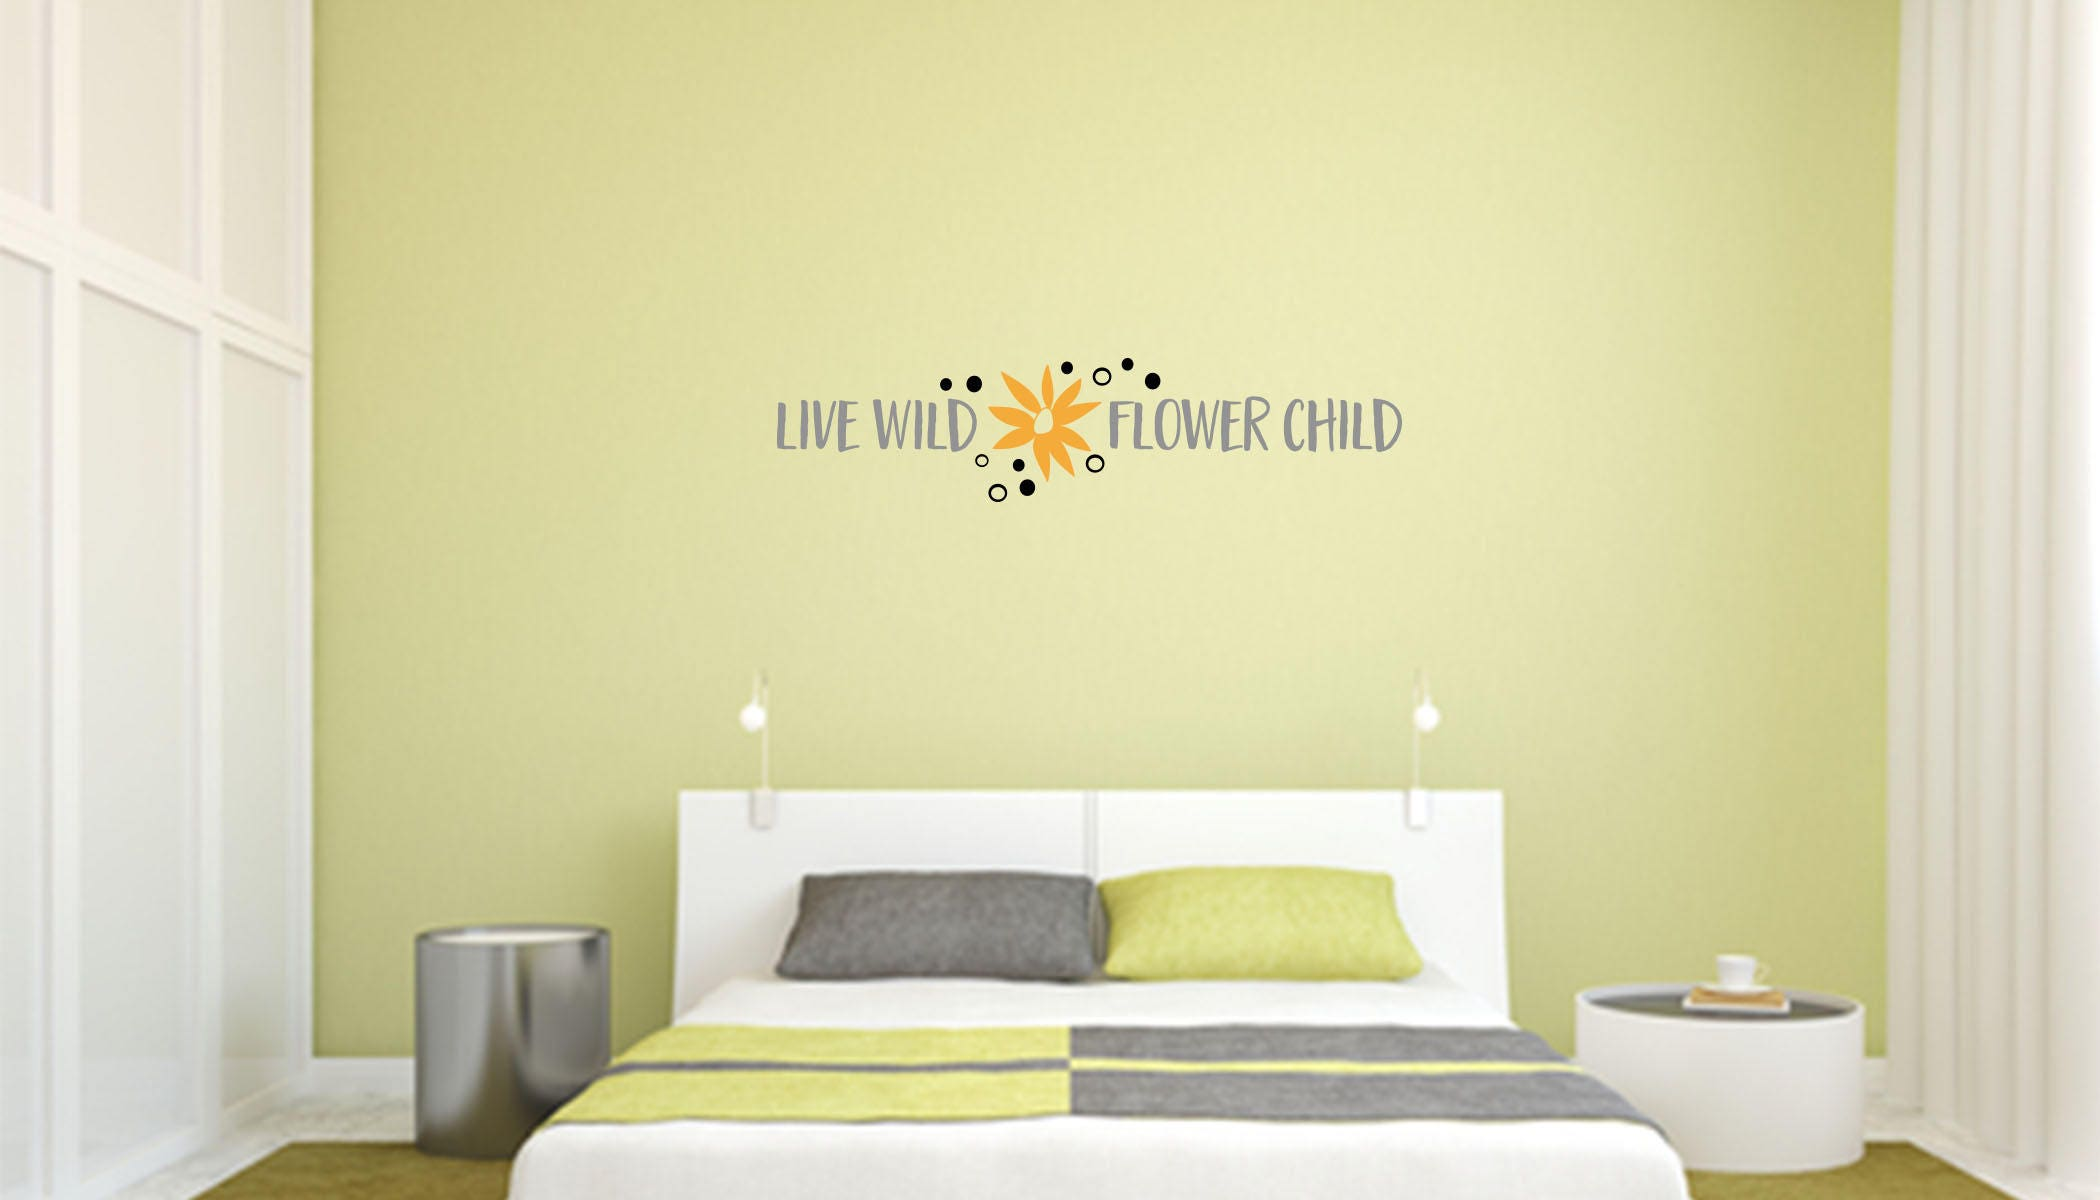 Live Wild Flower Child Multi-Colored Wall Decal Great For | Etsy